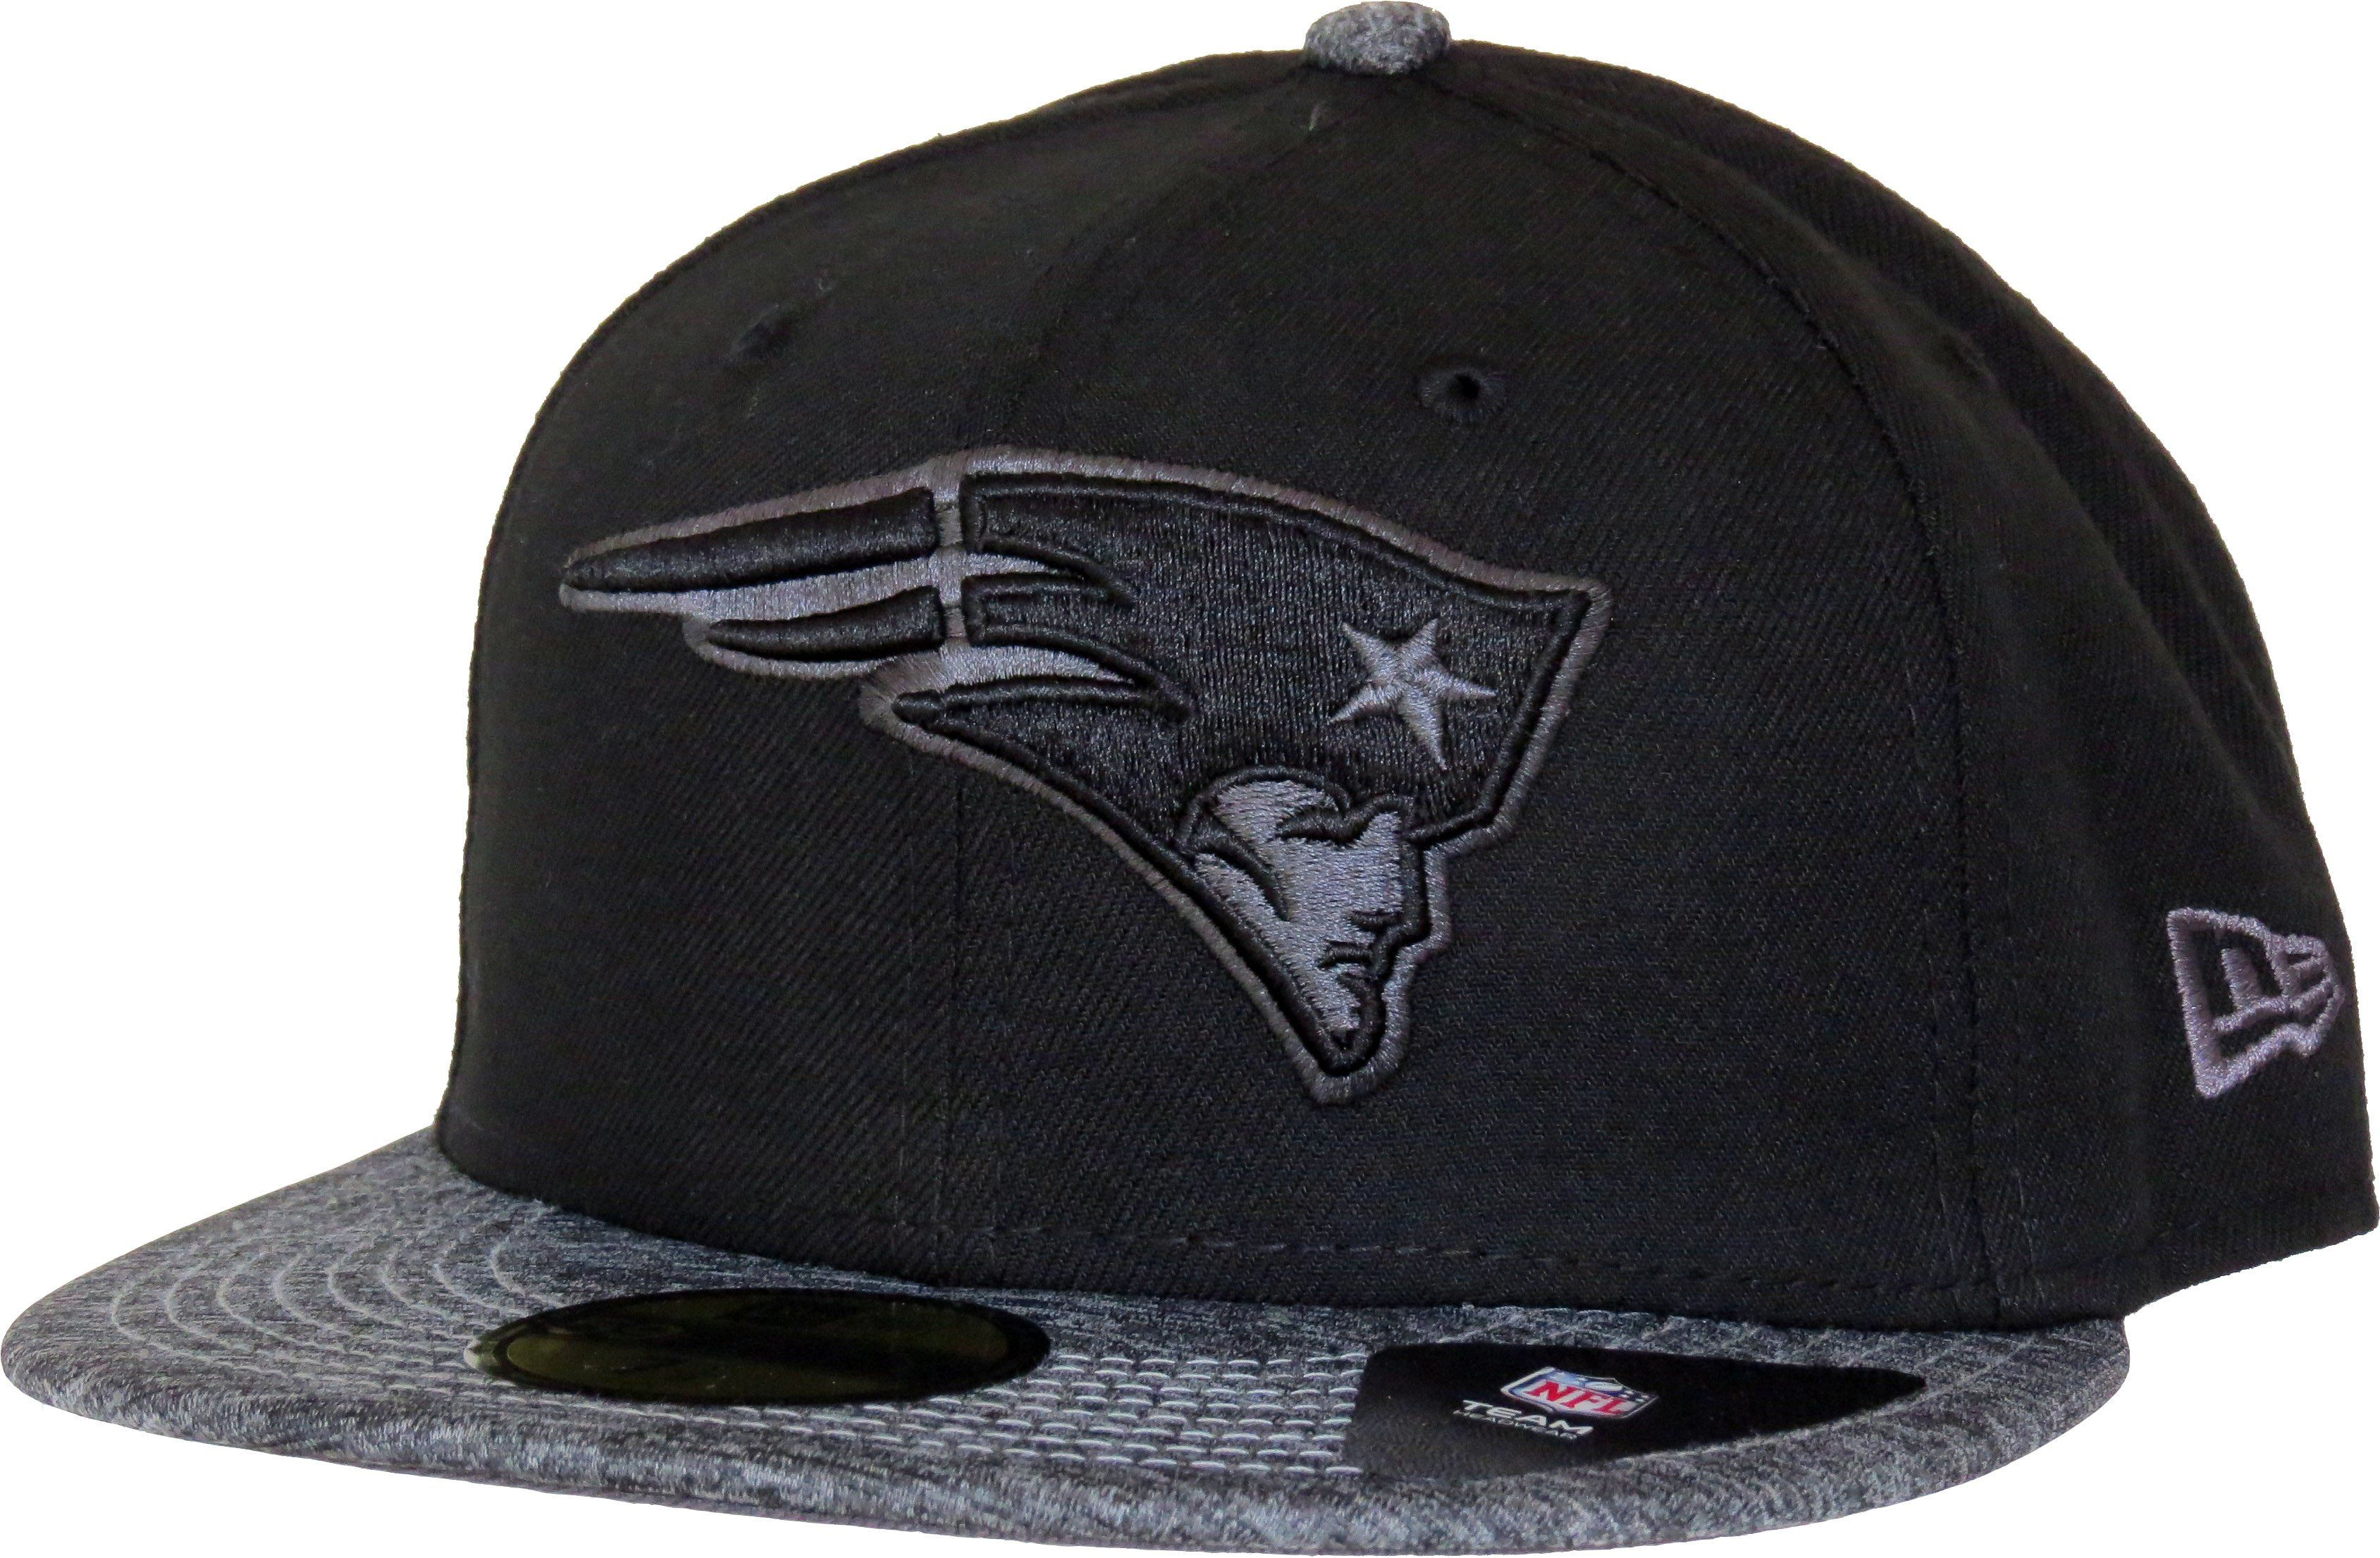 ca5e2df6a New Era 59Fifty NFL Grey Collection Fitted Team Cap. Black with the New  England Patriots